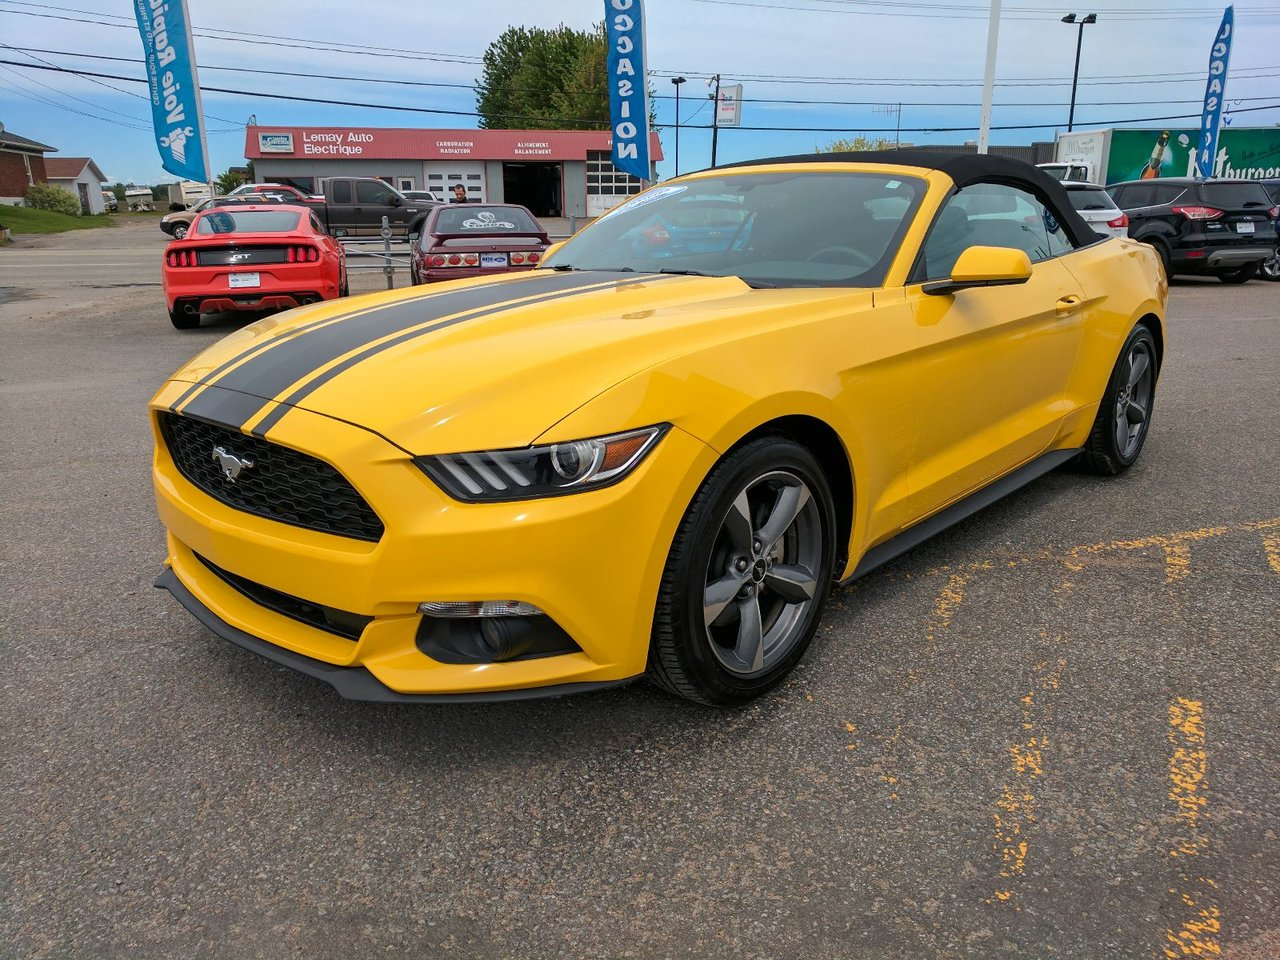 ford mustang 2015 vendre louiseville qc 1905151703 guide auto. Black Bedroom Furniture Sets. Home Design Ideas